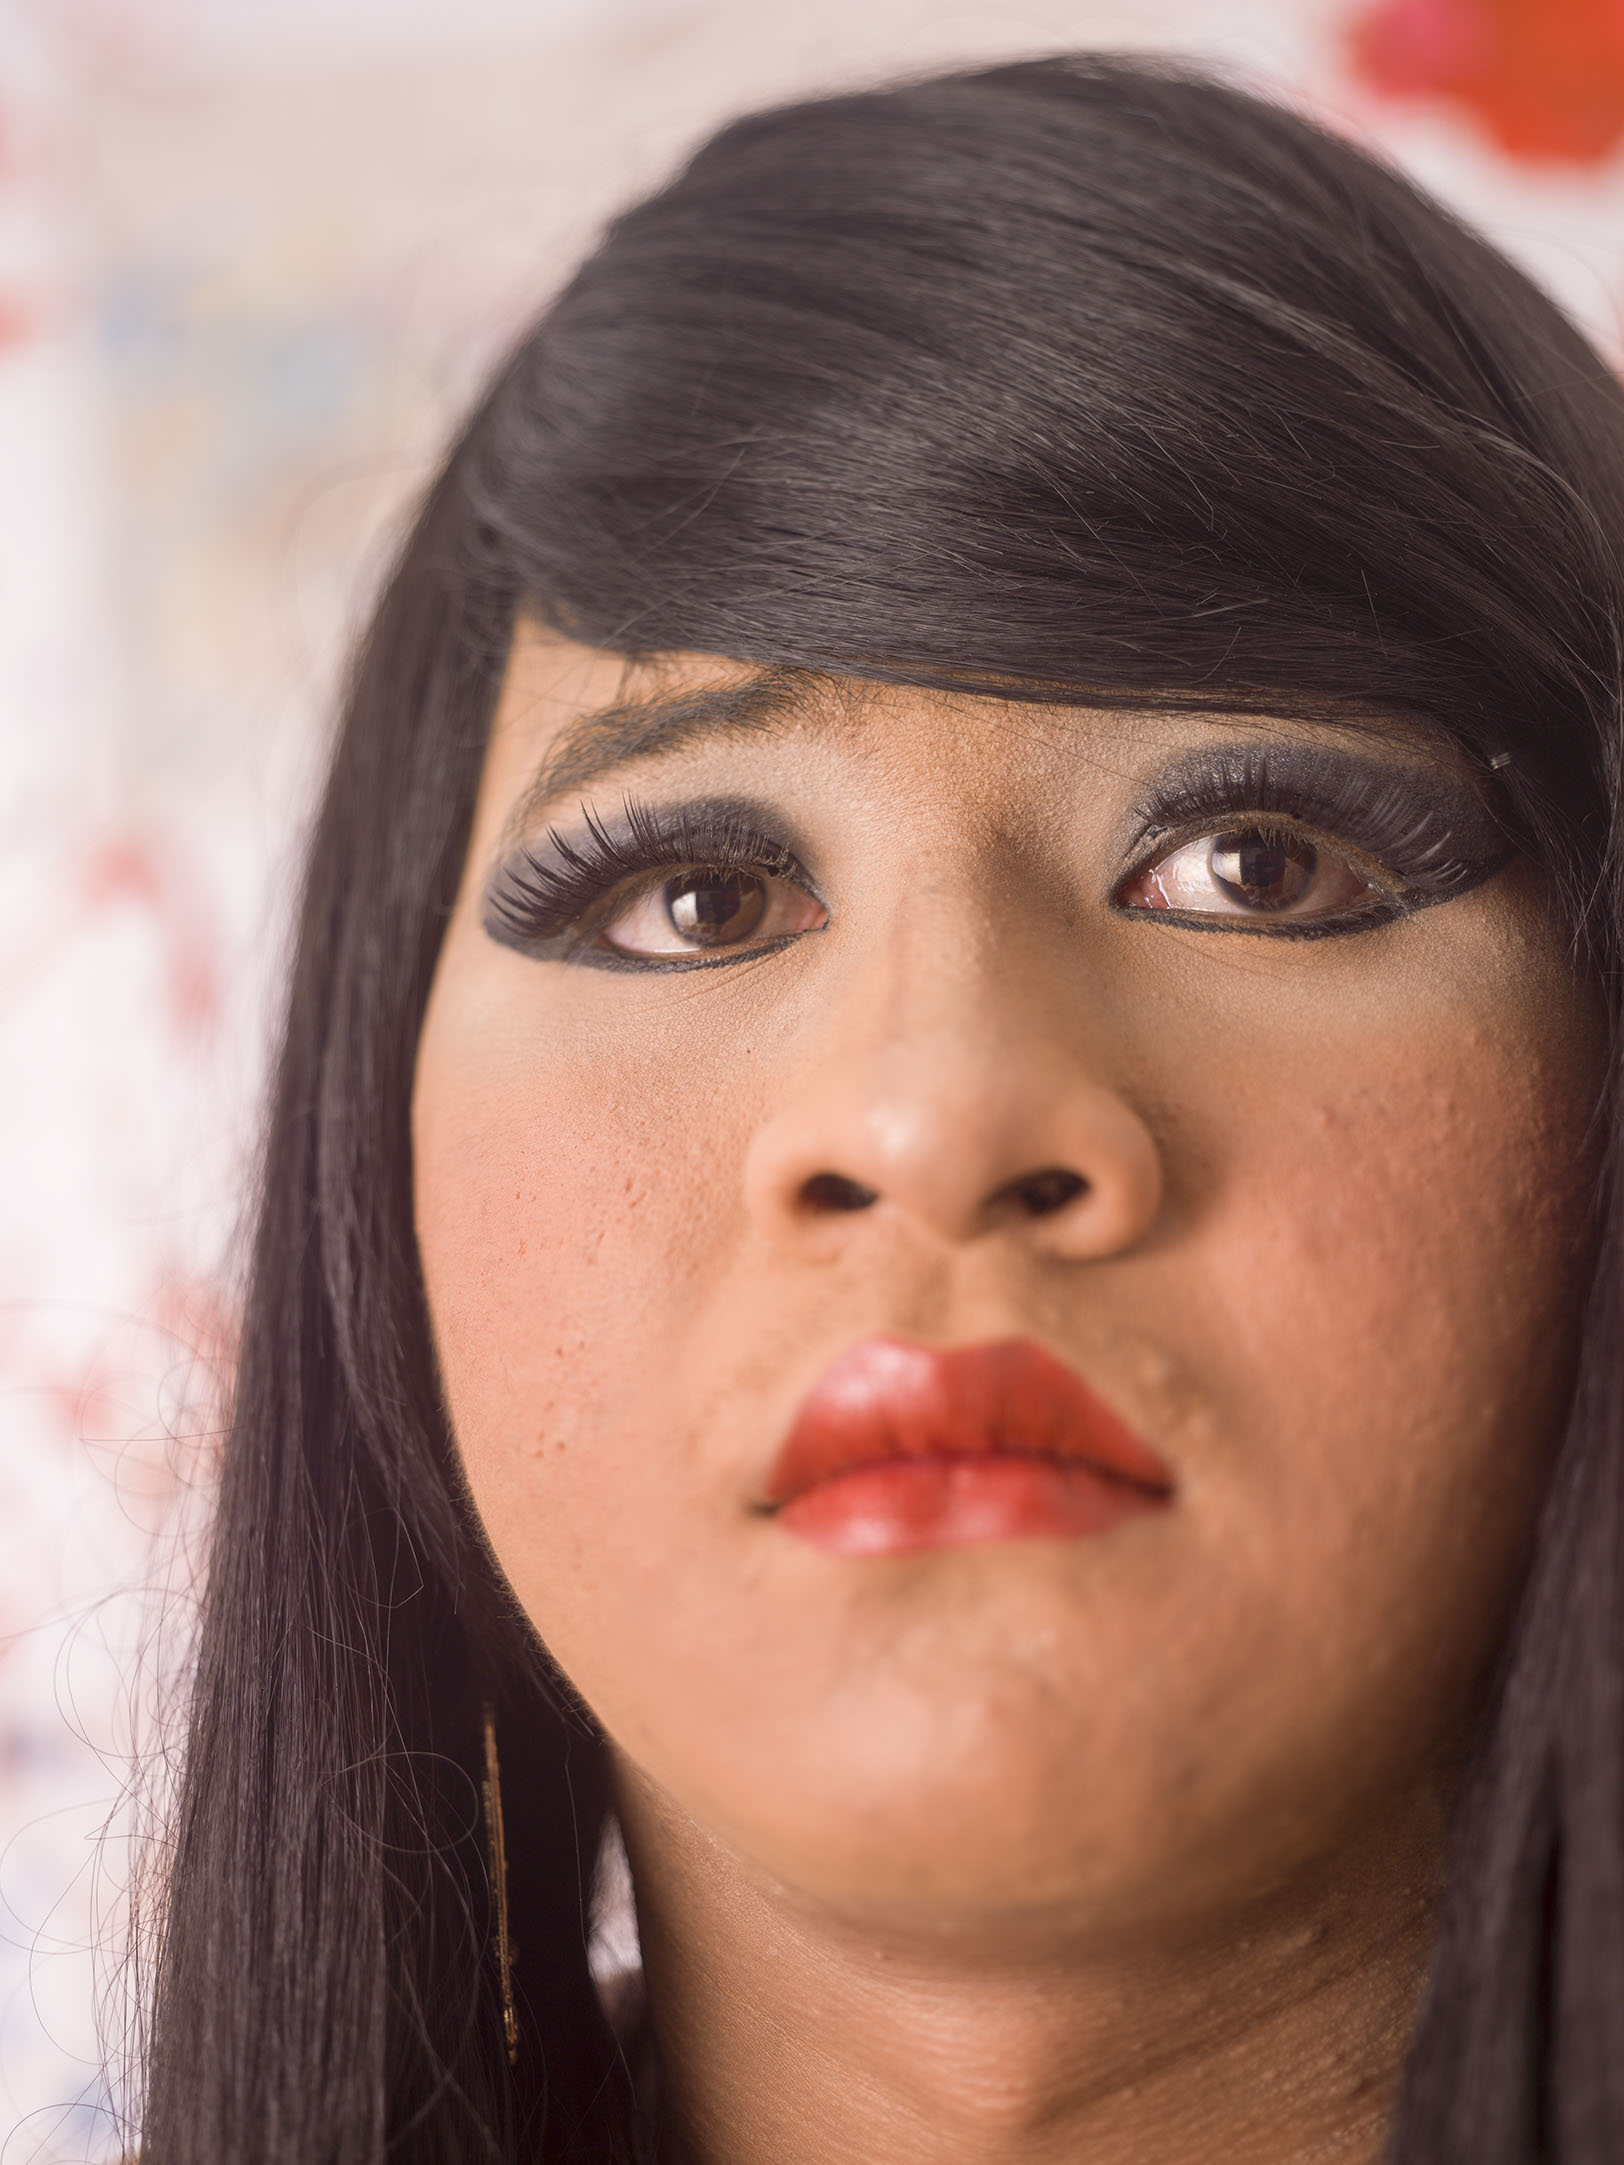 Drag in Cambodia: Tuy Suoy / Chhim Thi portrait	by Martijn Crowe